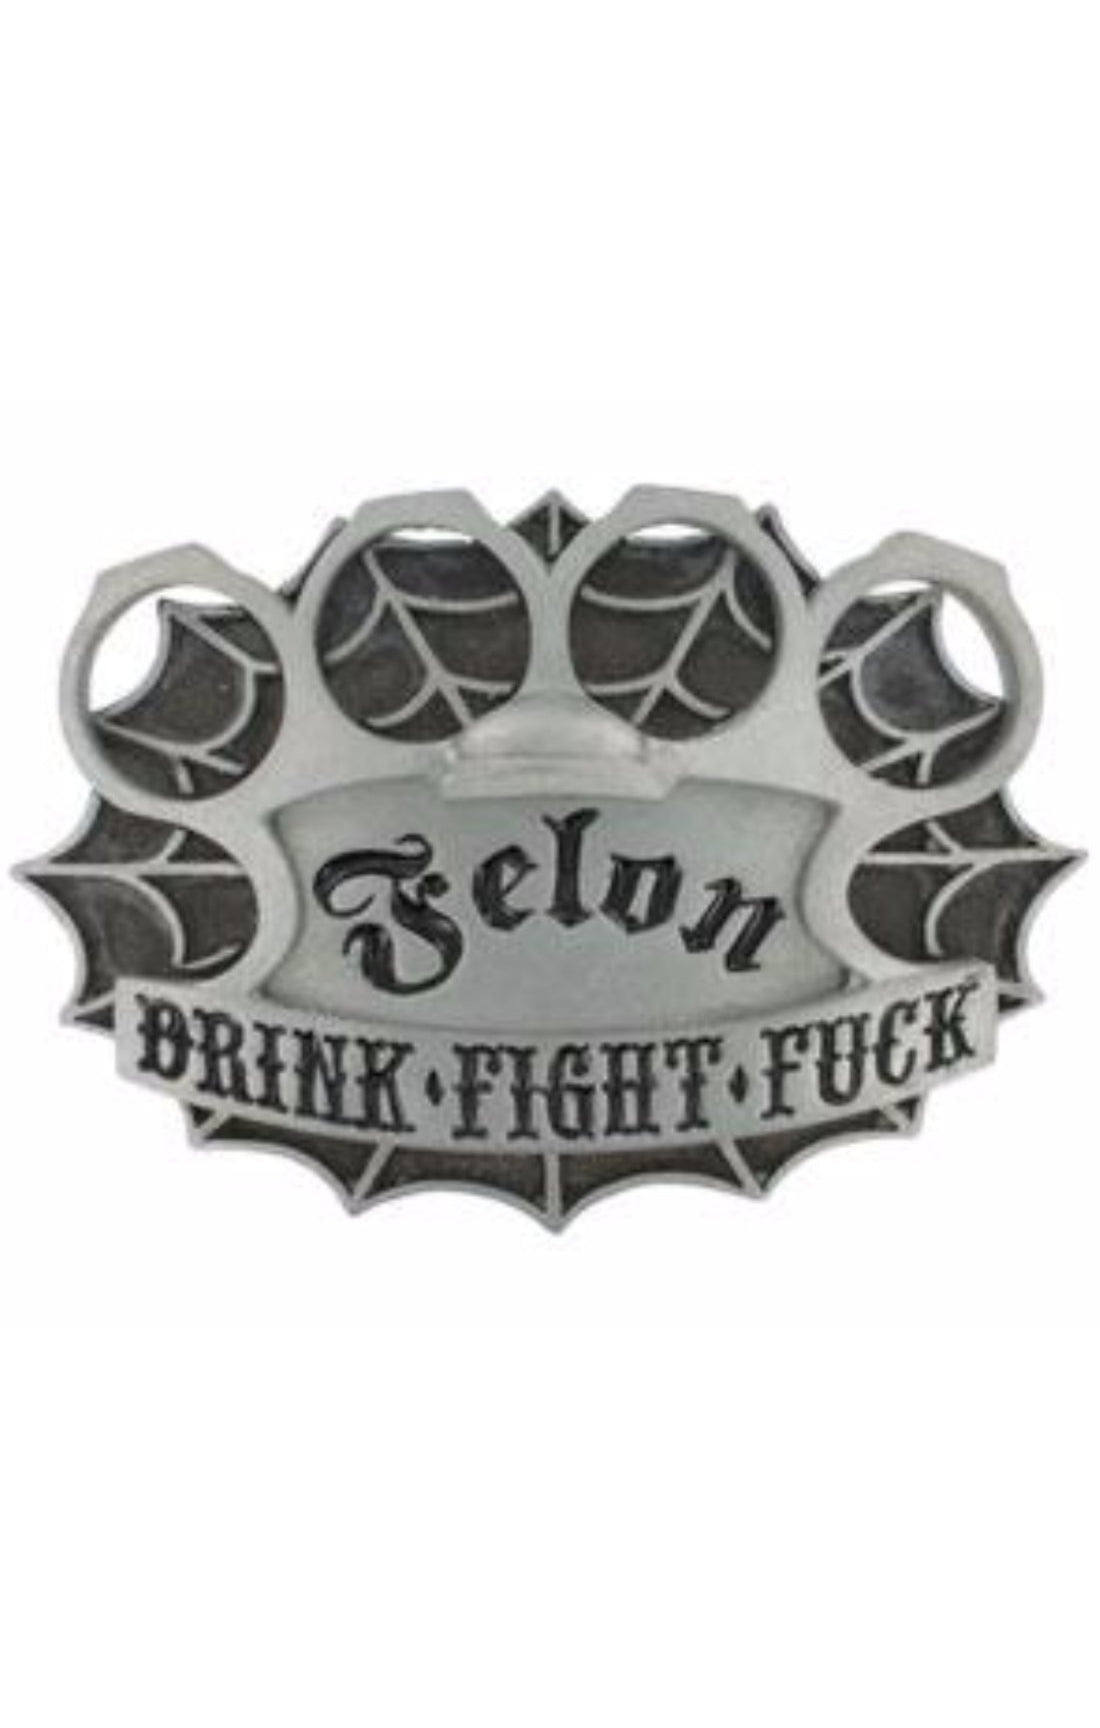 The DRINK FIGHT FUCK Belt Buckle